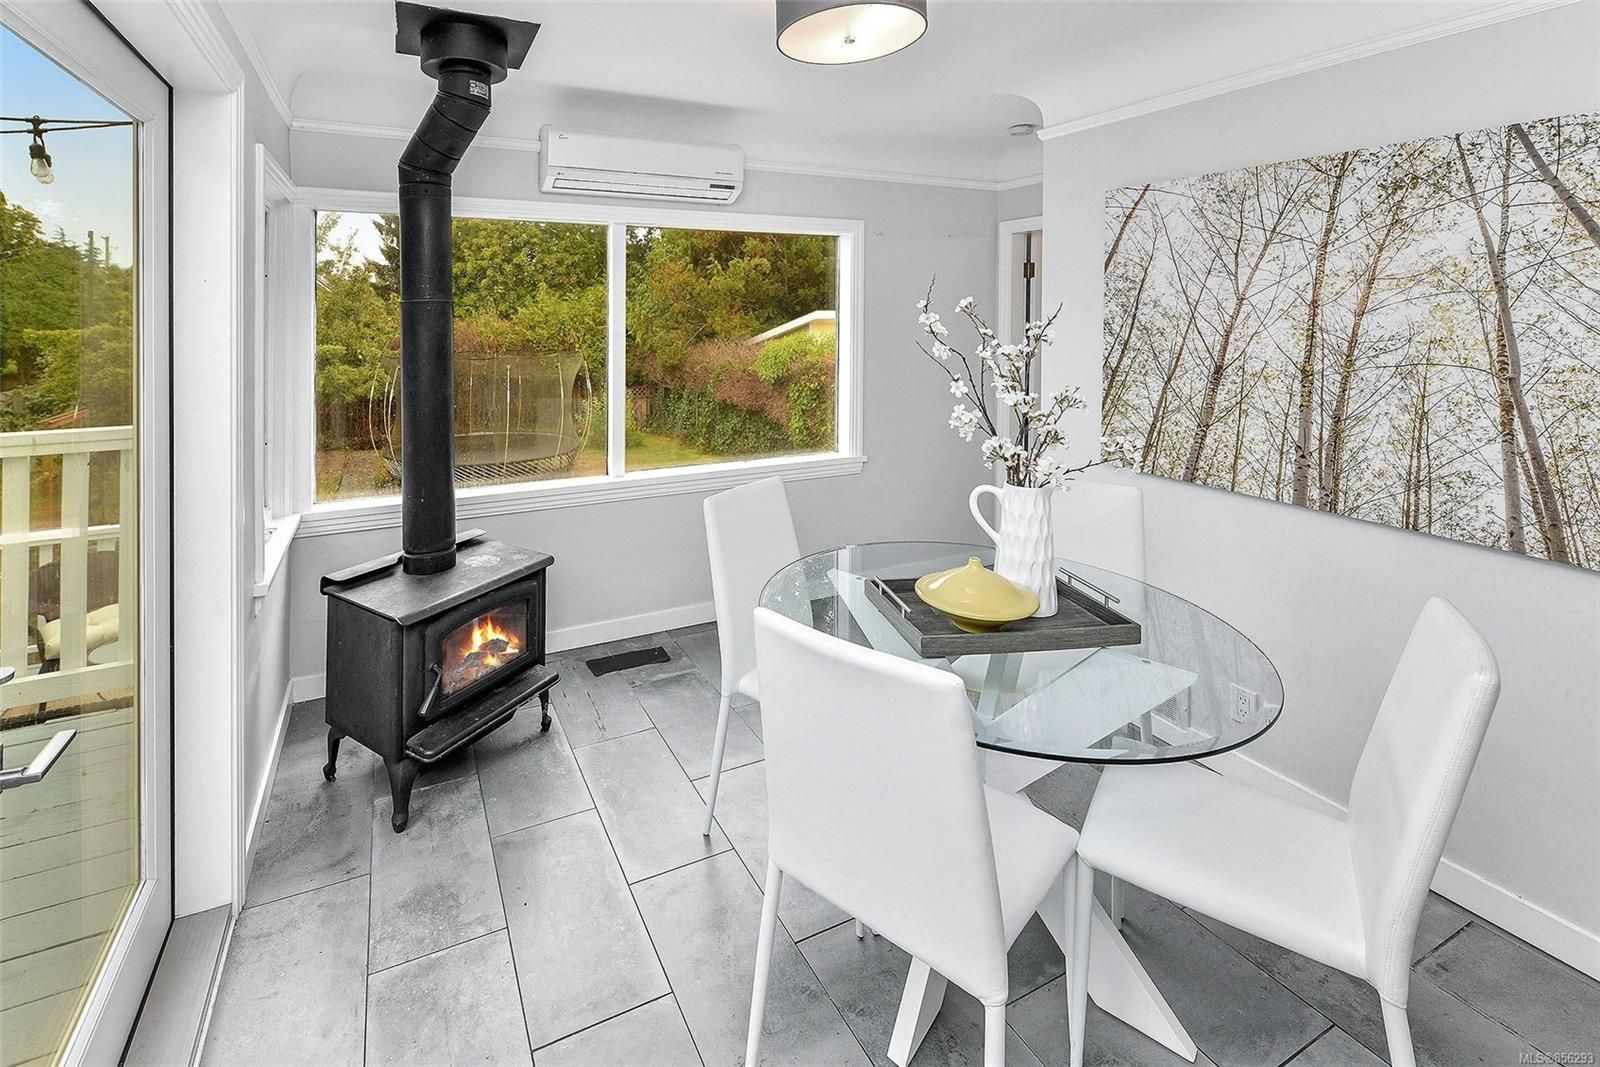 Photo 17: Photos: 1753 Armstrong Ave in : OB North Oak Bay House for sale (Oak Bay)  : MLS®# 856293